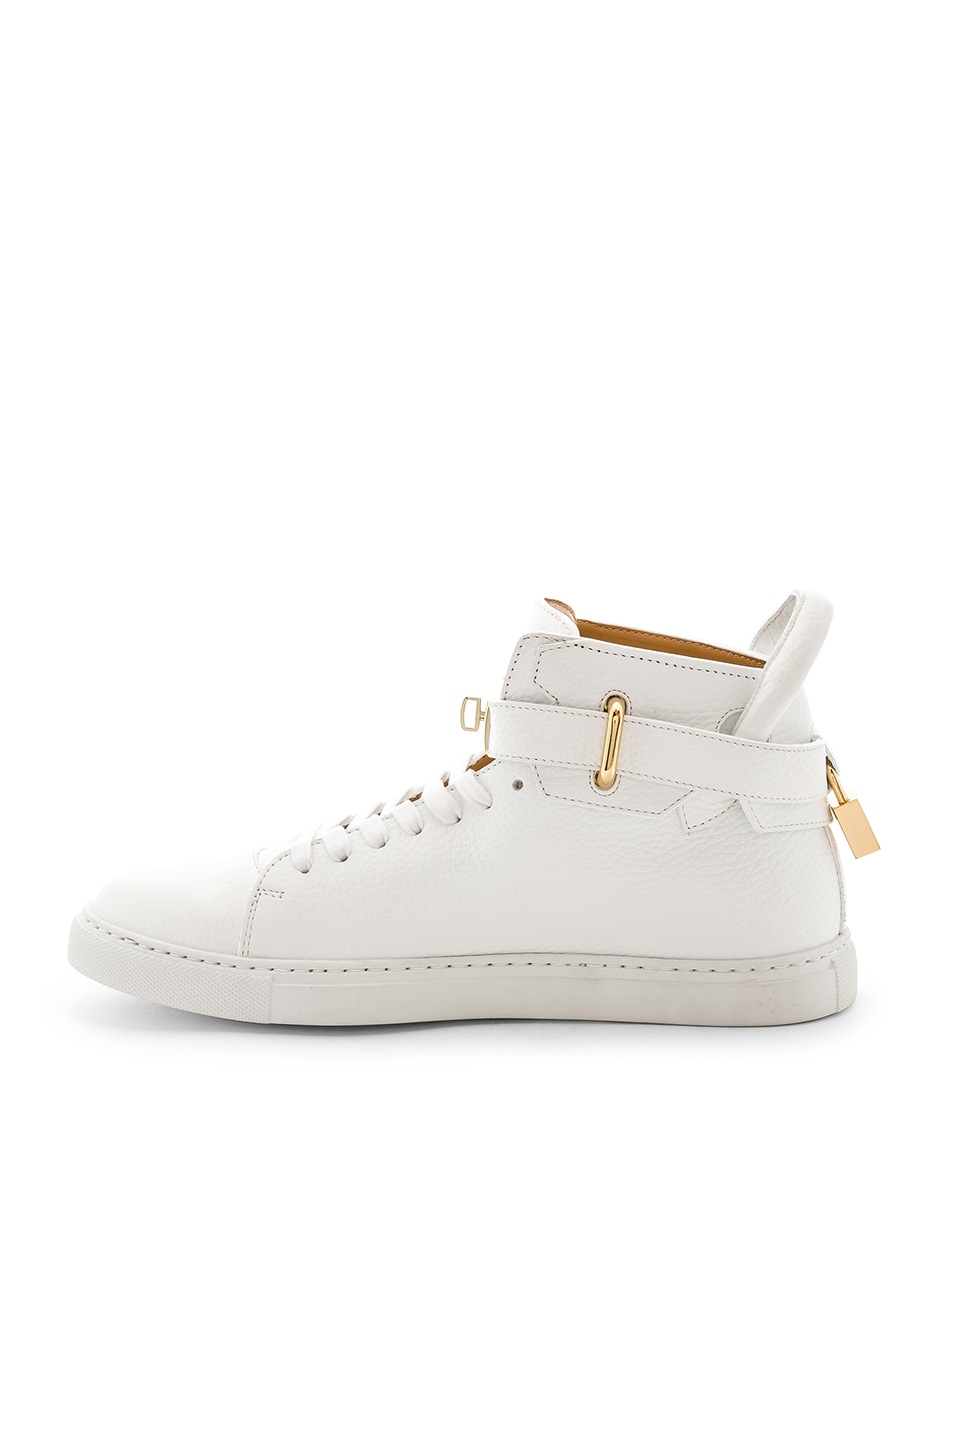 Image 5 of Buscemi 100MM High Top Pebbled Leather Sneakers in White